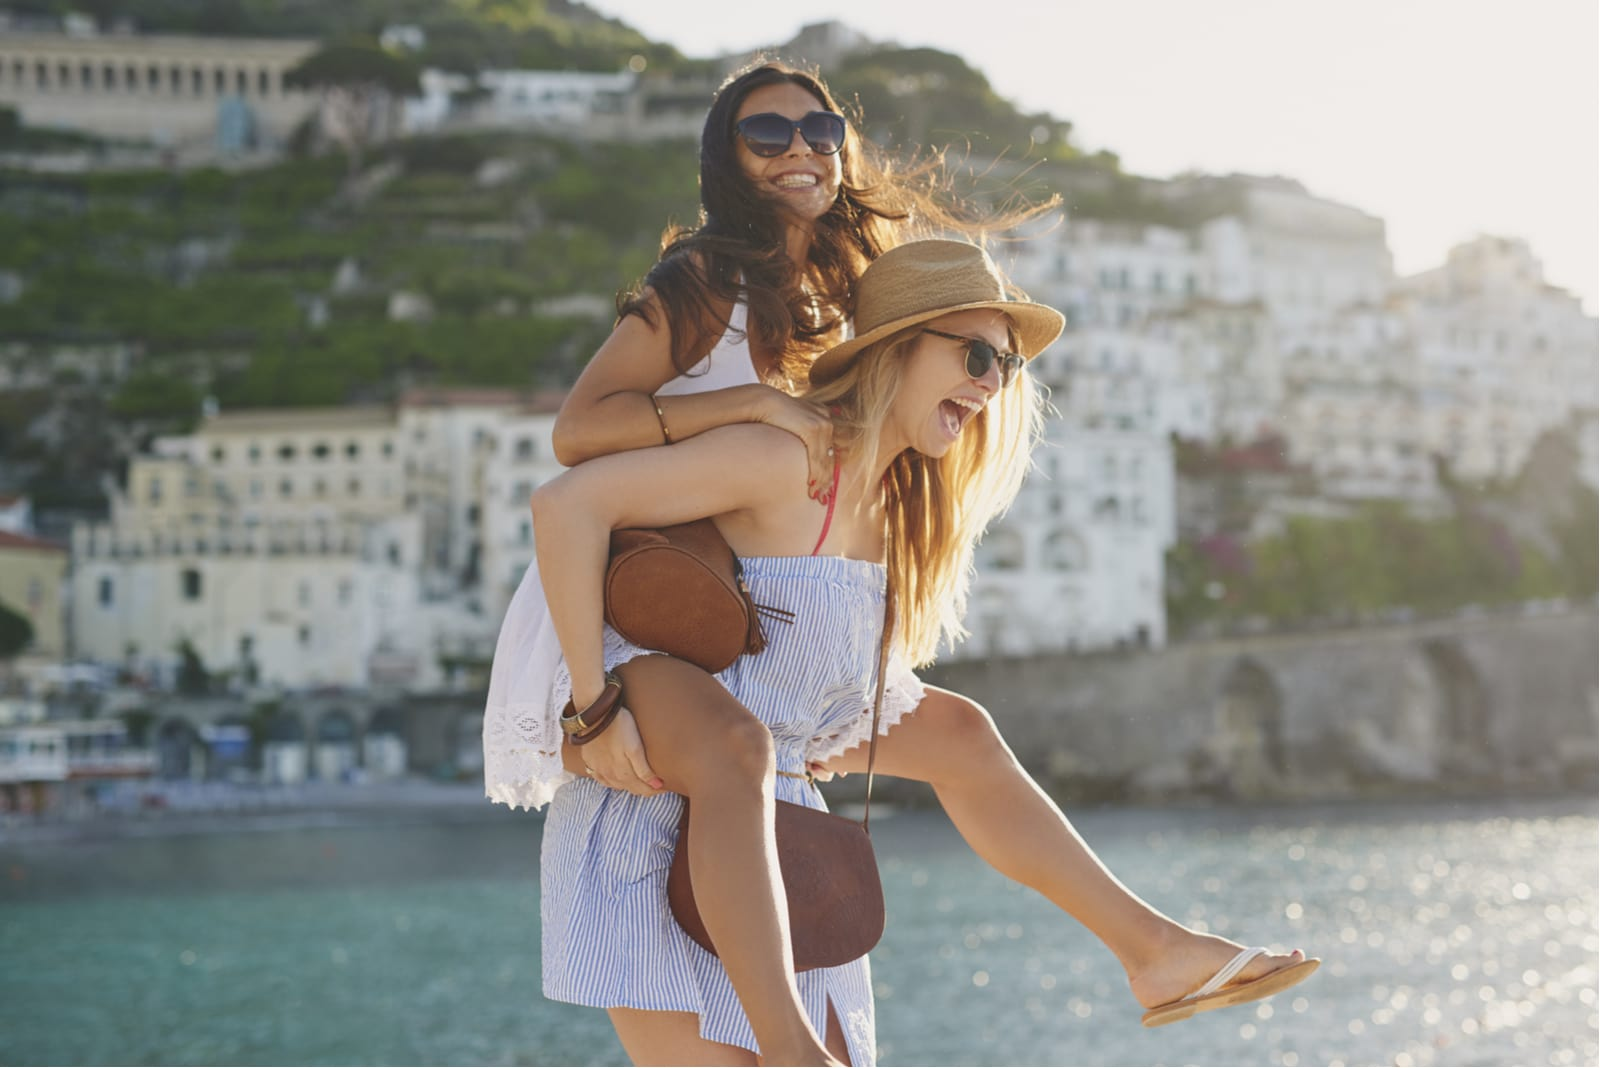 a smiling woman carries another woman on her back and having fun on the beach